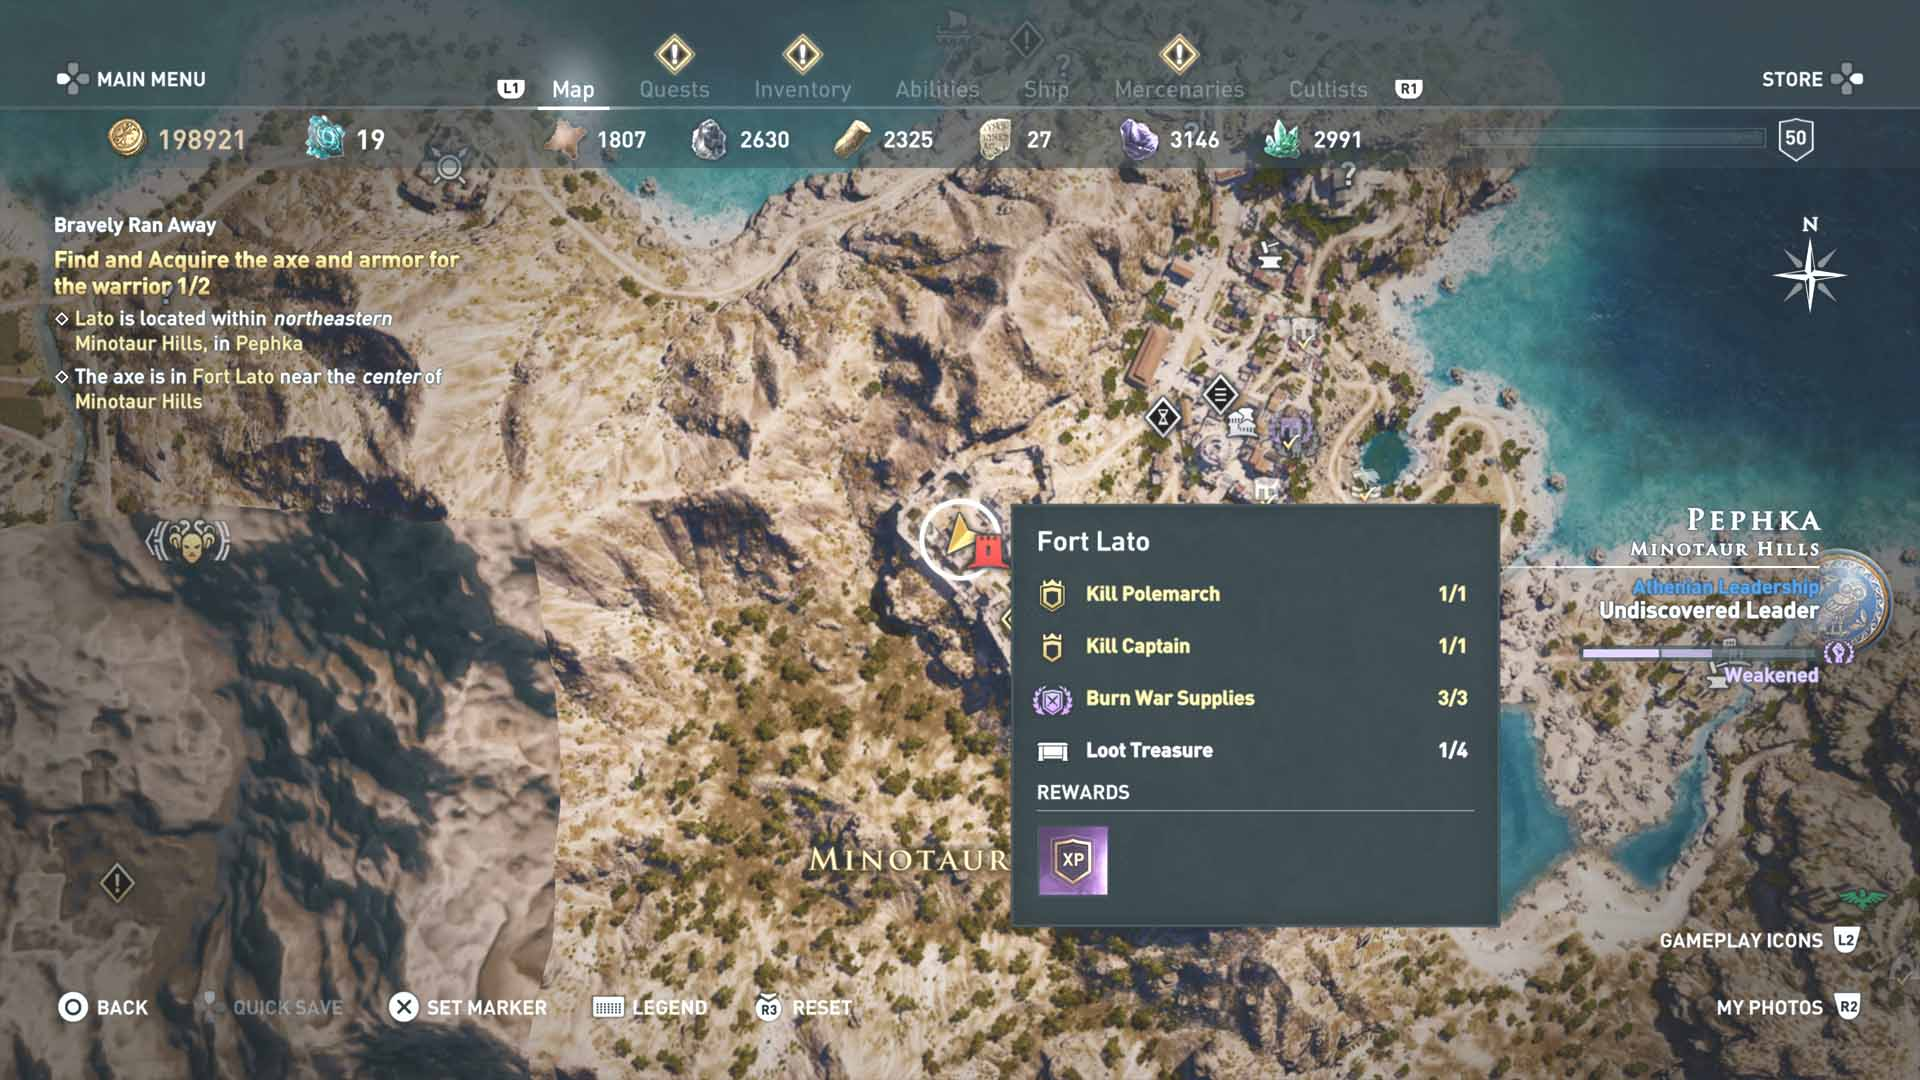 All Loot Treasure And Ancient Tablet Locations Pephka All Tombs Ainigmata And Loot Treasure Locations Assassin S Creed Odyssey